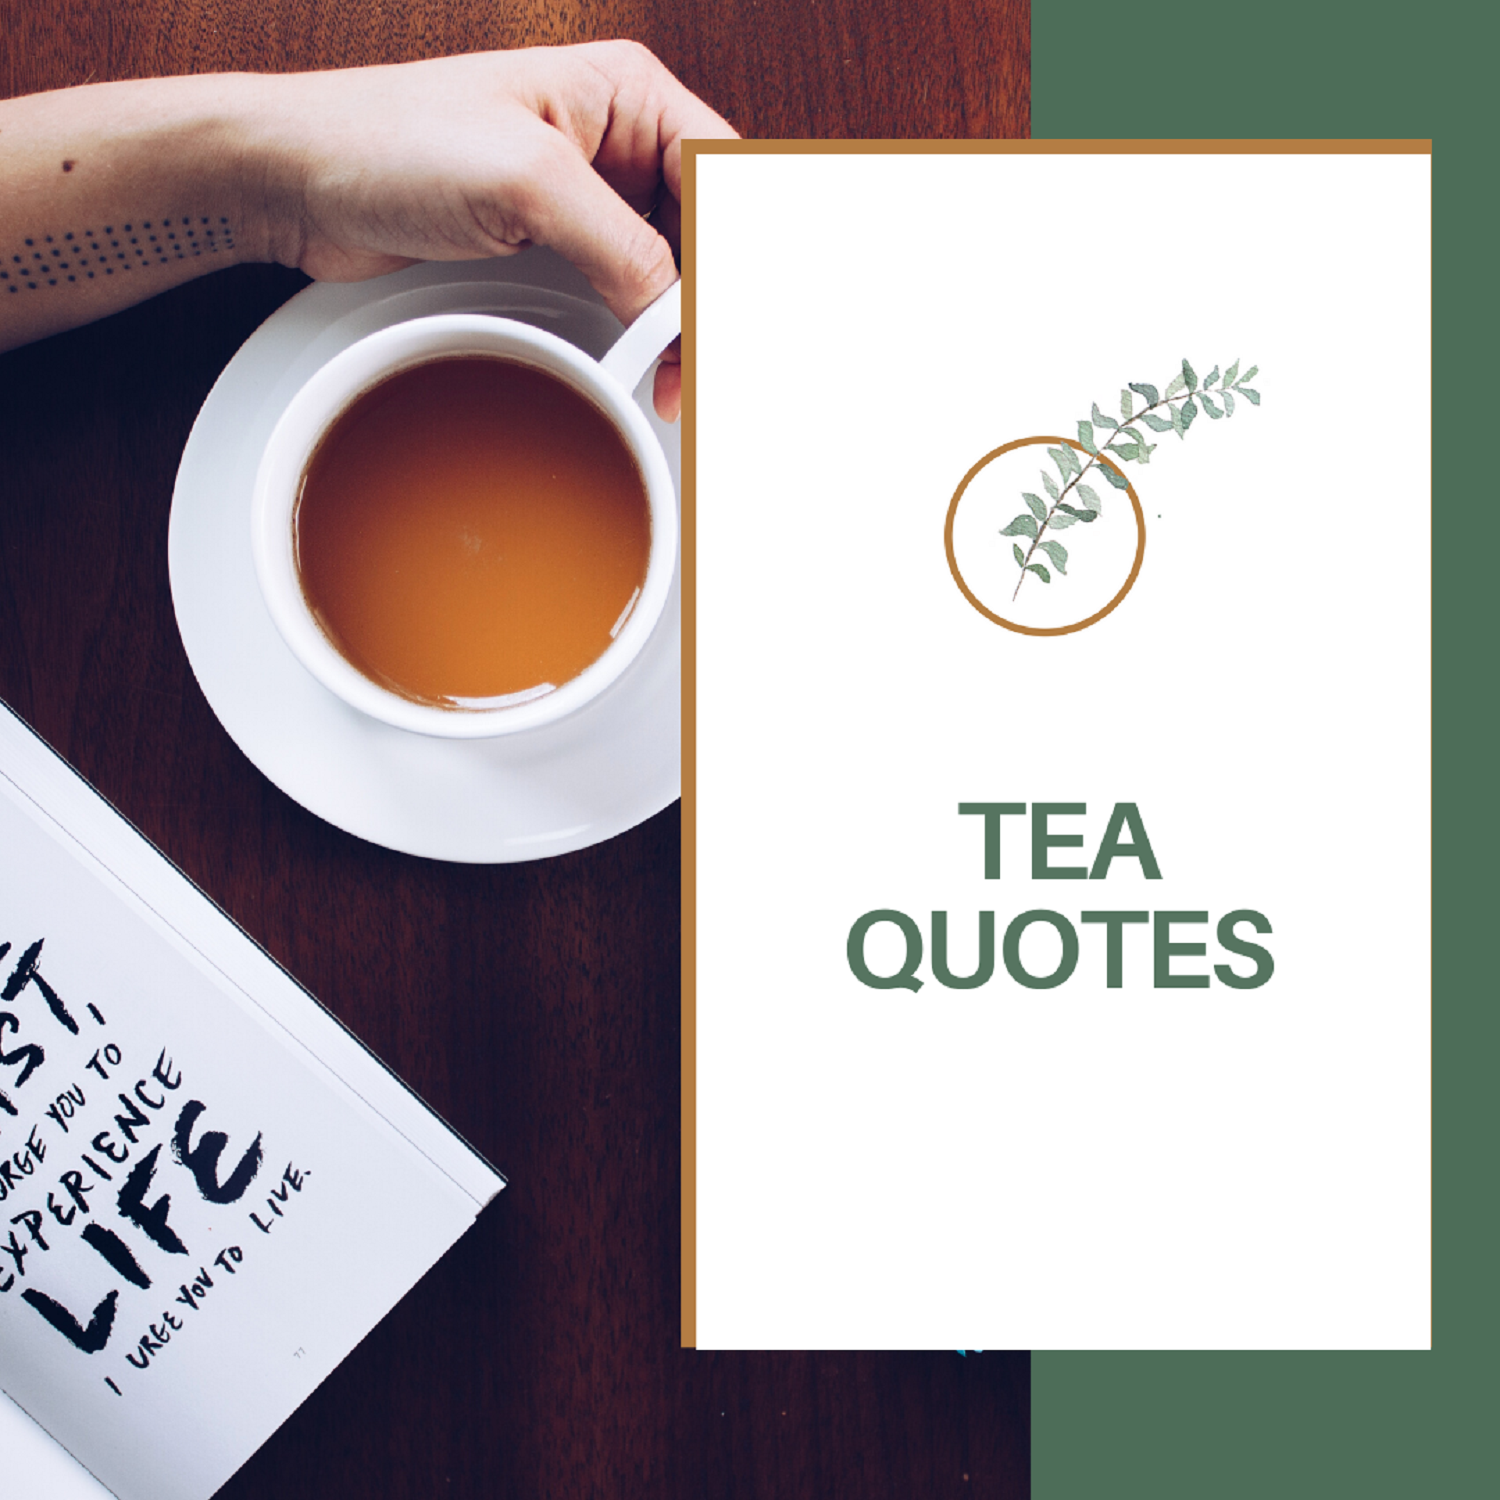 100 Amazing Tea Quotes That You Must Know??